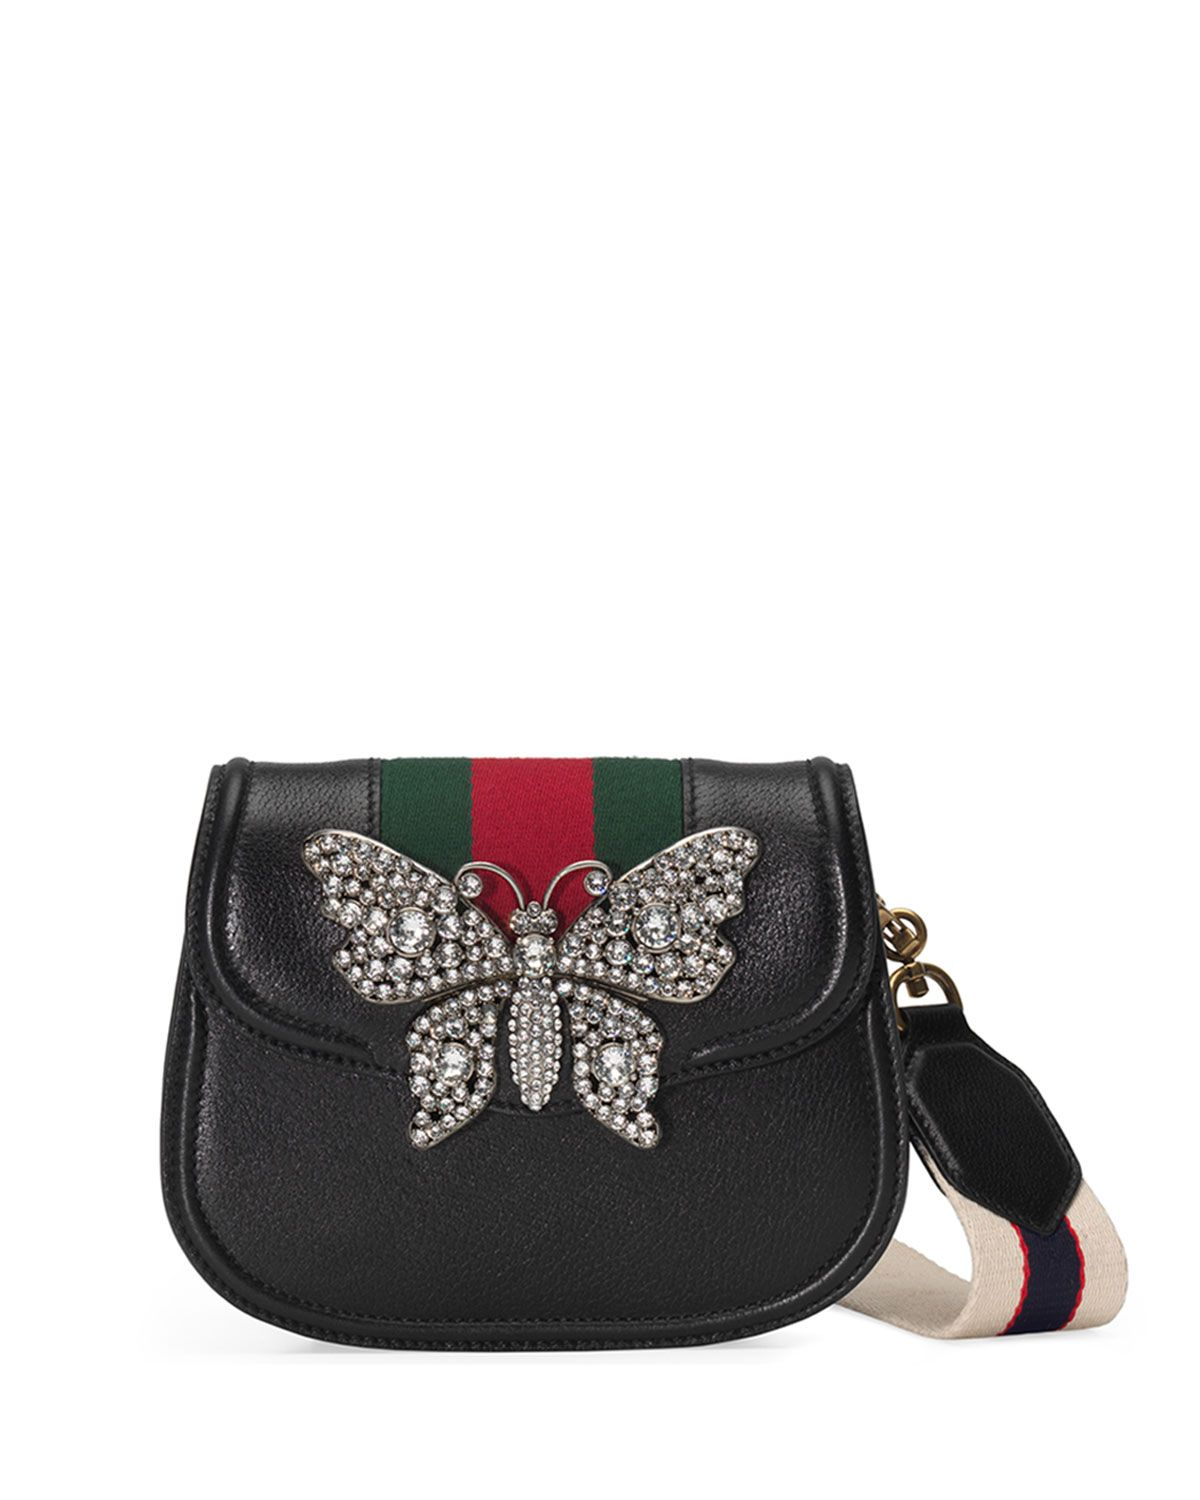 d18573ac8 Gucci Linea Totem Small Leather Shoulder Bag with Crystal Butterfly & Web  Strap